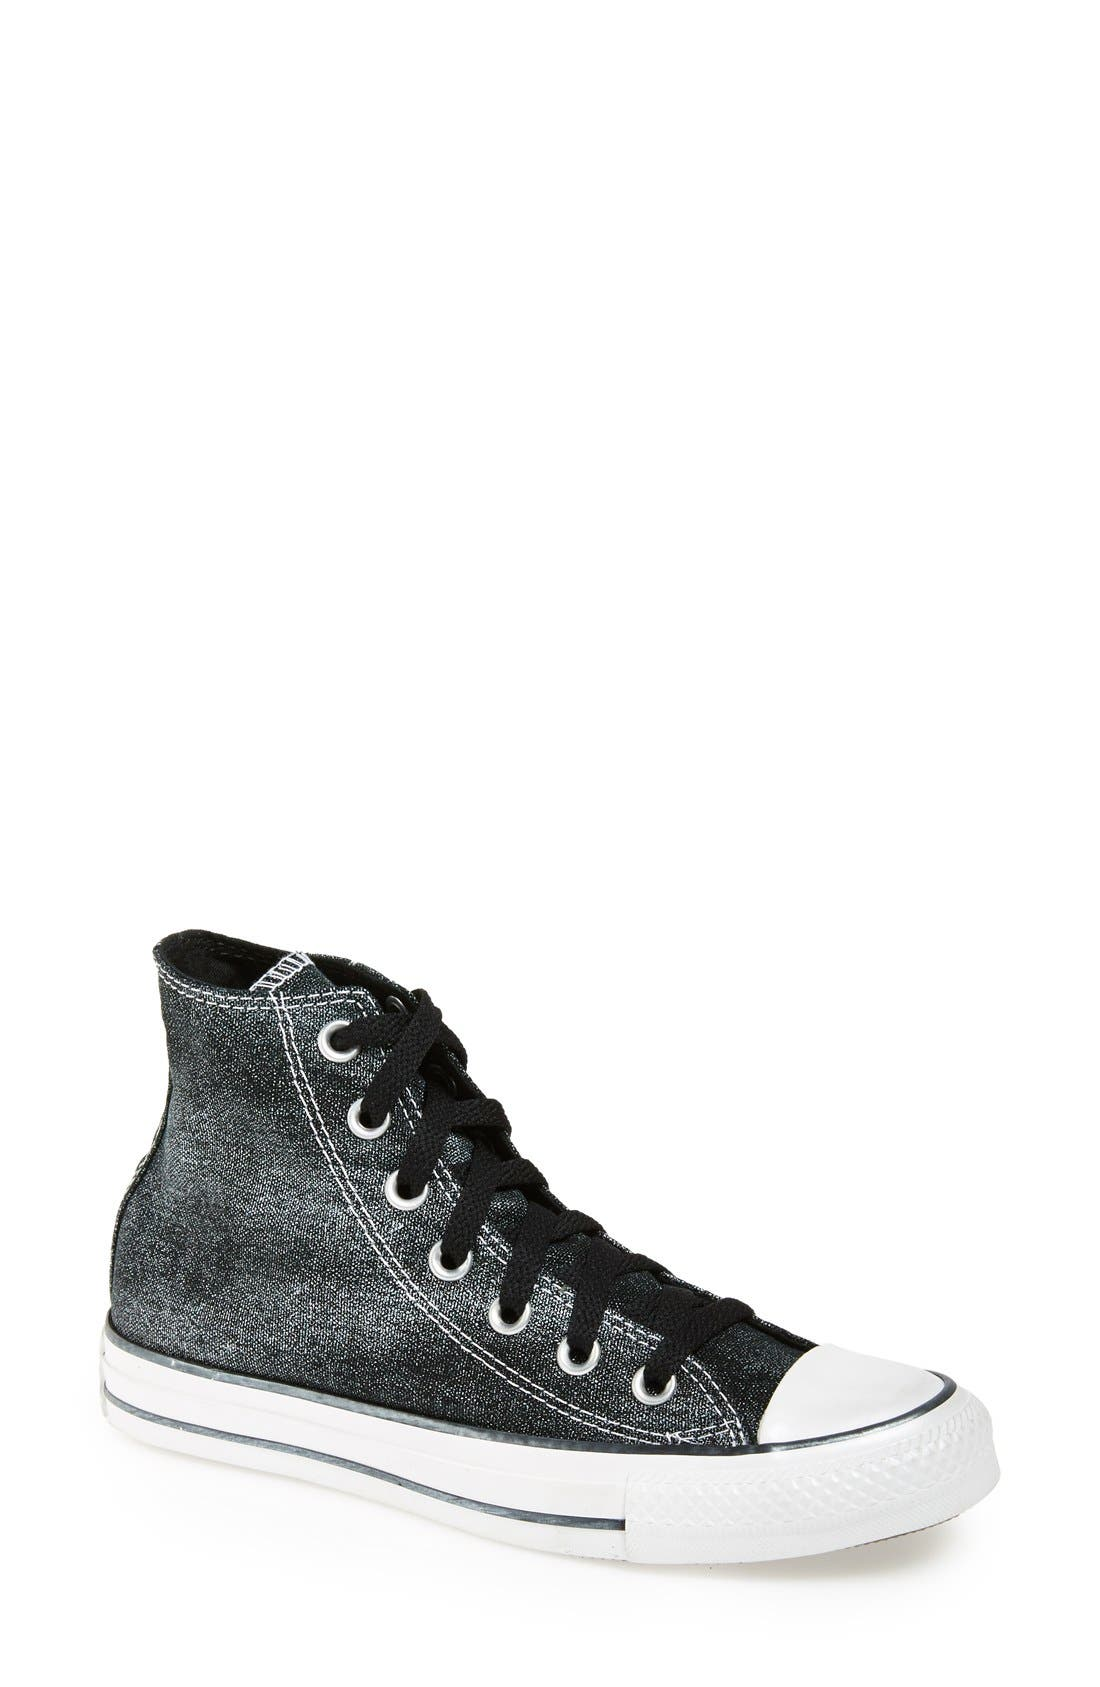 Chuck Taylor<sup>®</sup> All Star<sup>®</sup> 'Sparkle Wash' High Top Sneaker,                             Main thumbnail 1, color,                             001